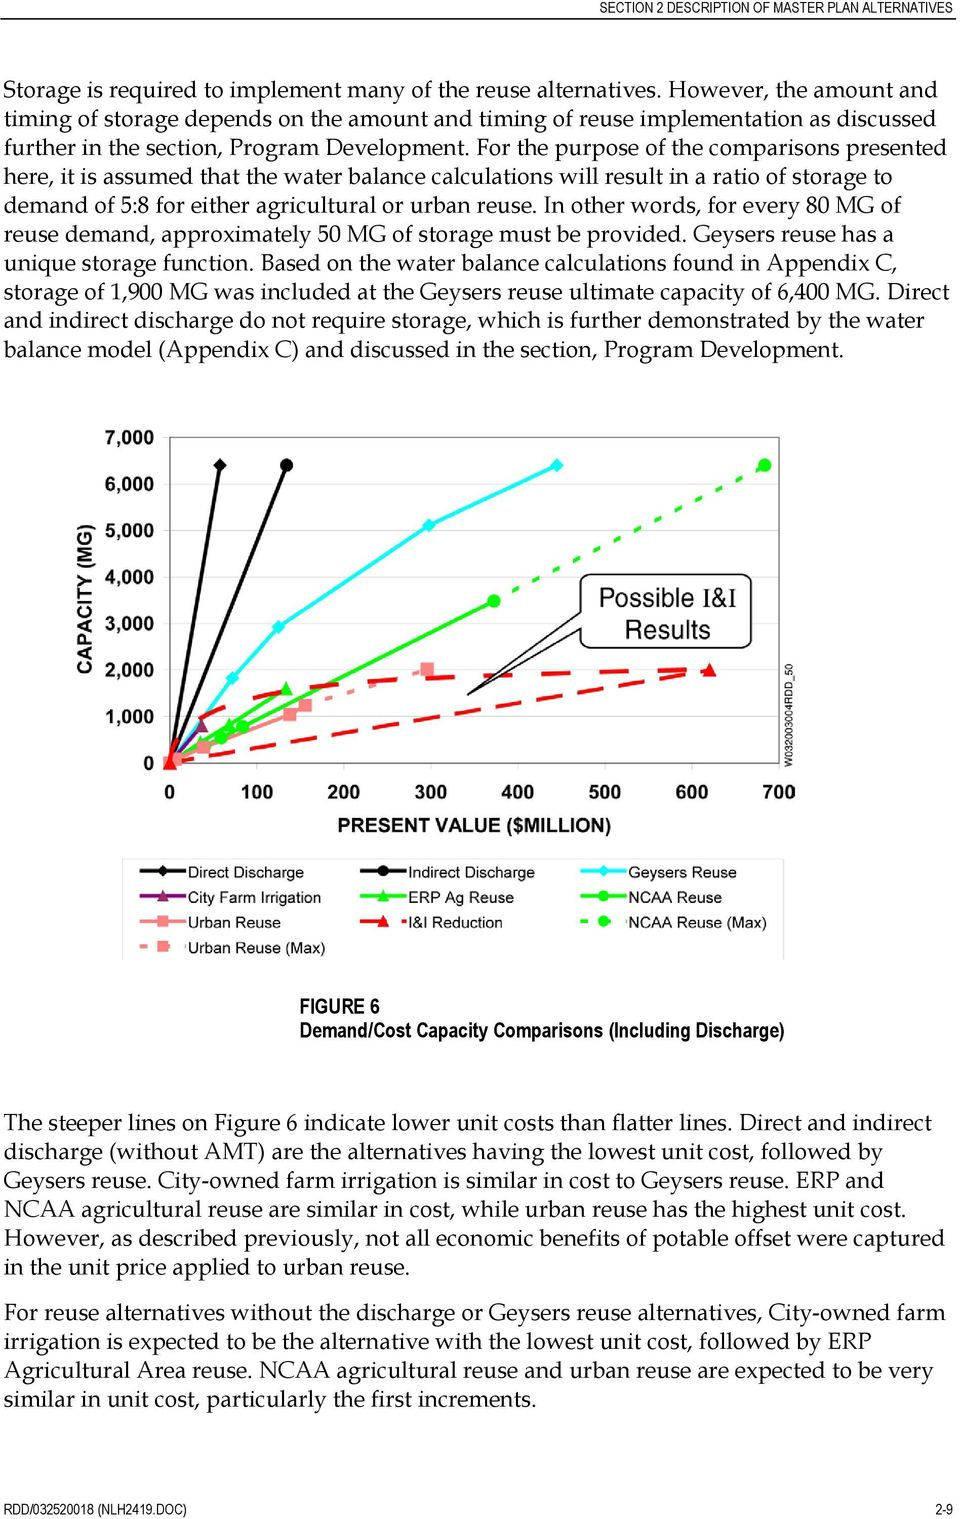 For the purpose of the comparisons presented here, it is assumed that the water balance calculations will result in a ratio of storage to demand of 5:8 for either agricultural or urban reuse.